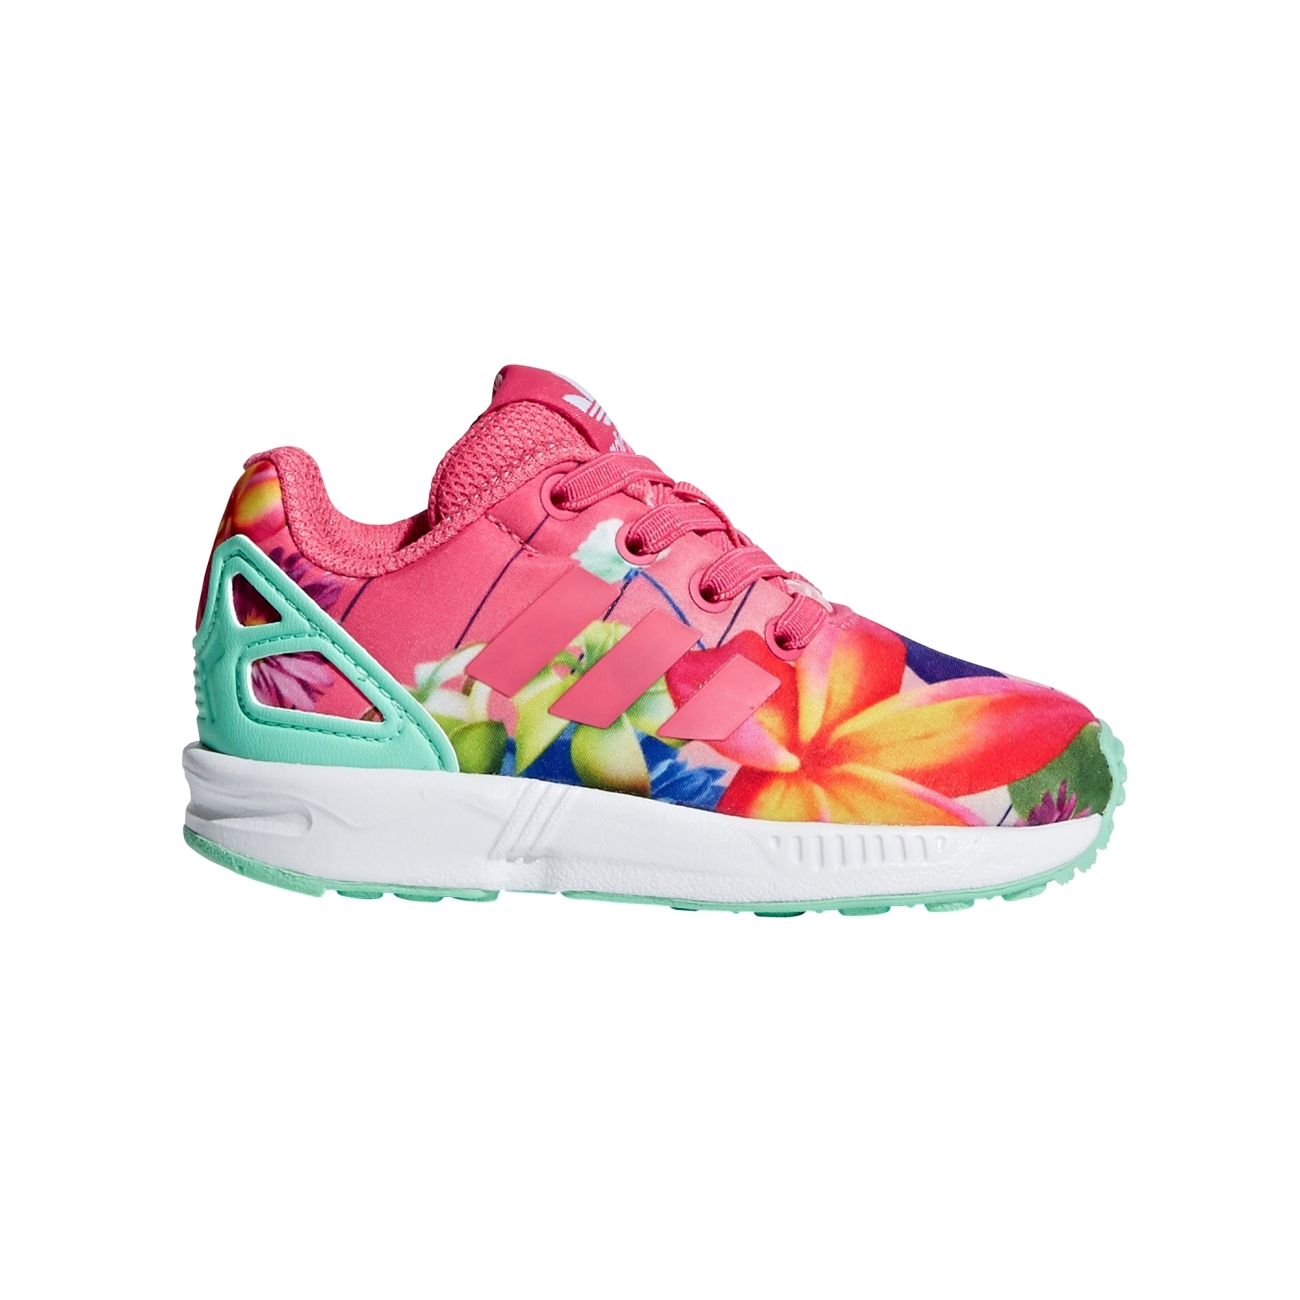 Adidas Originals ZX Flux El Infants Sprint